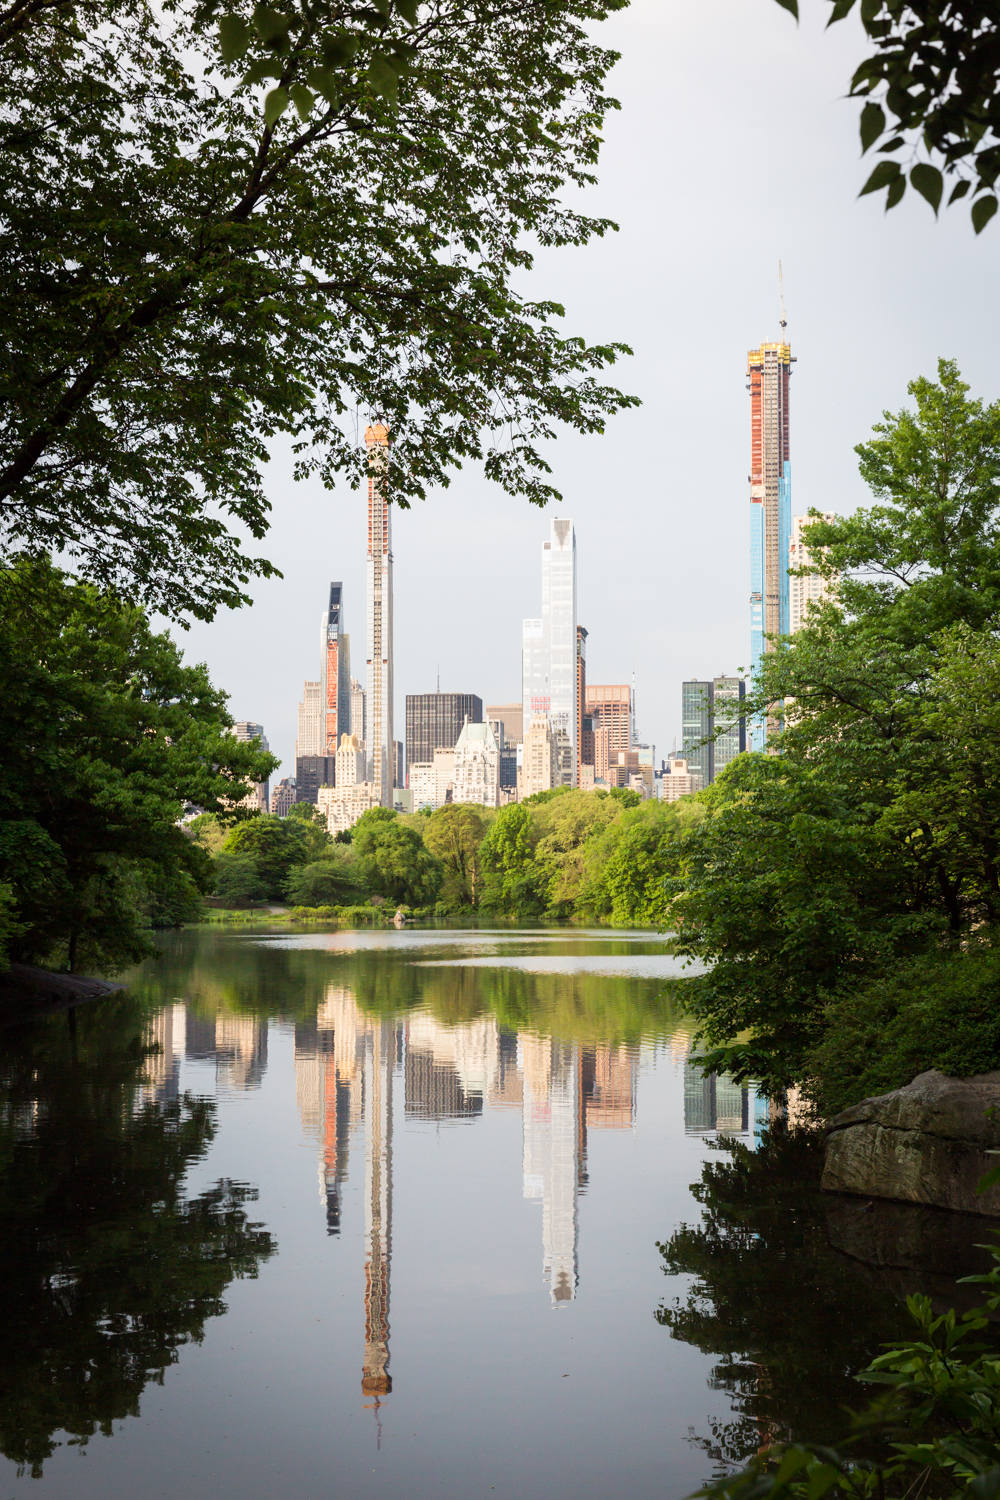 View of NYC skyline across Central Park lake